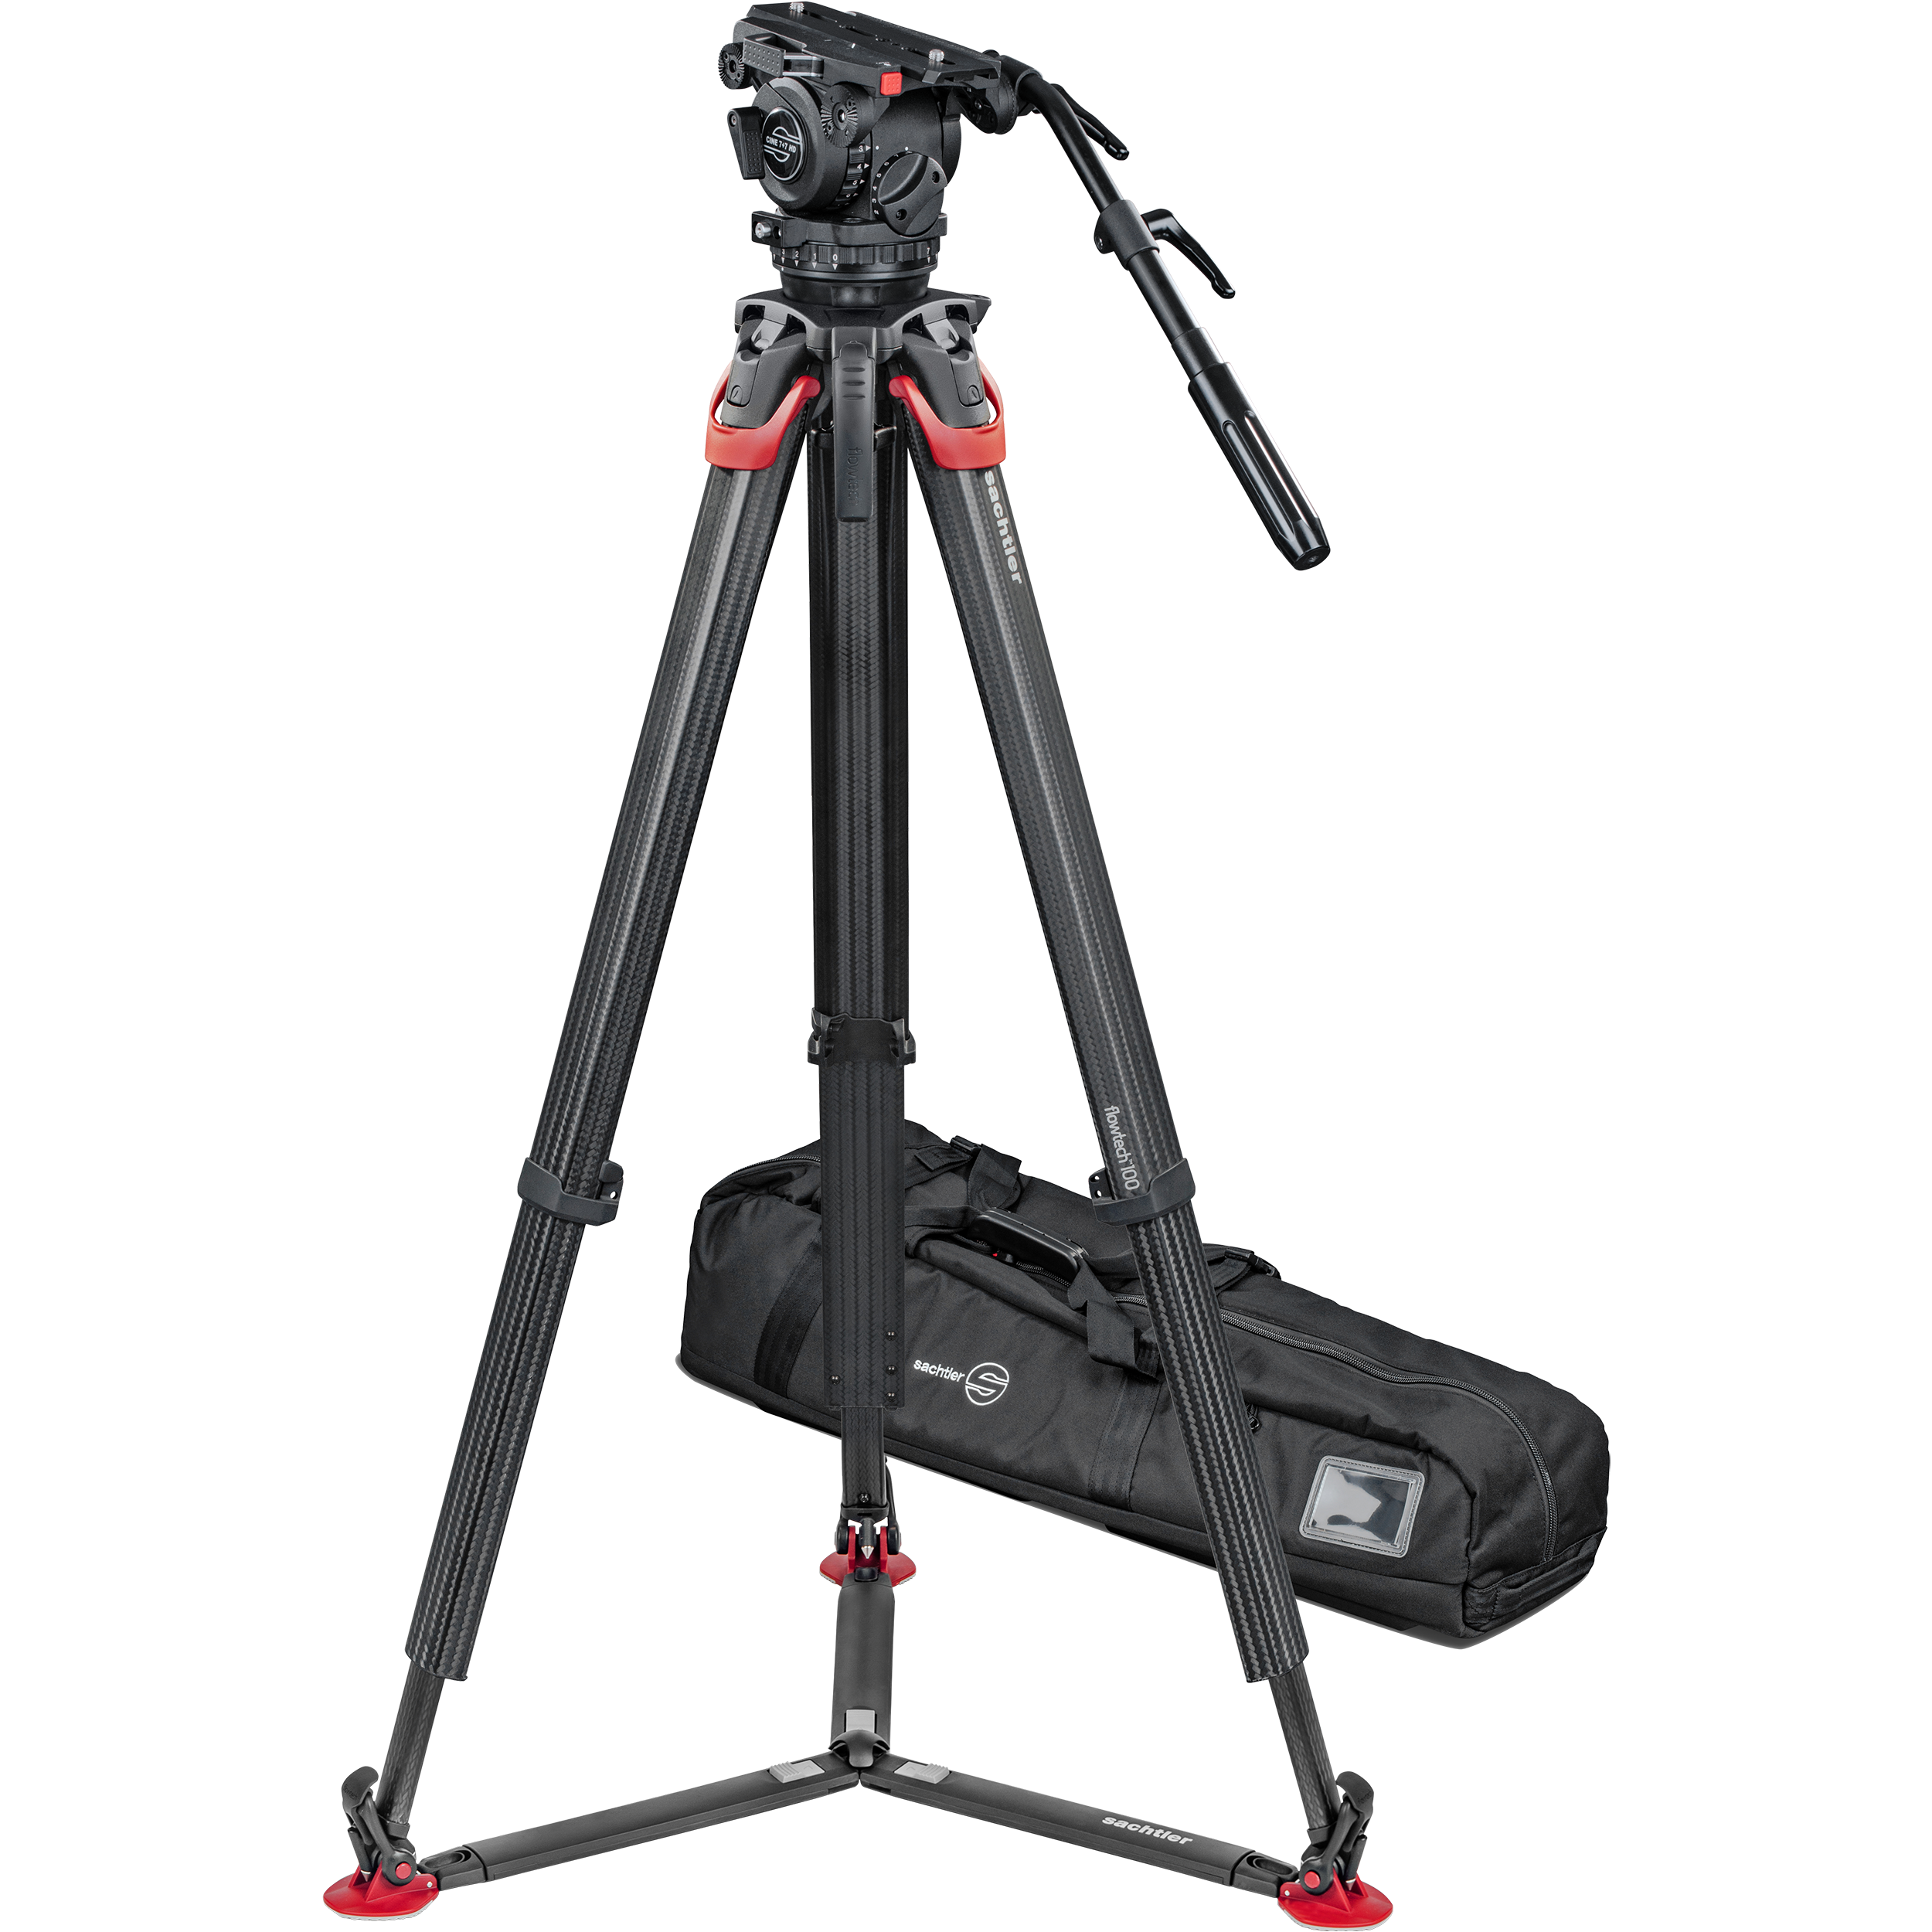 Tripods and more